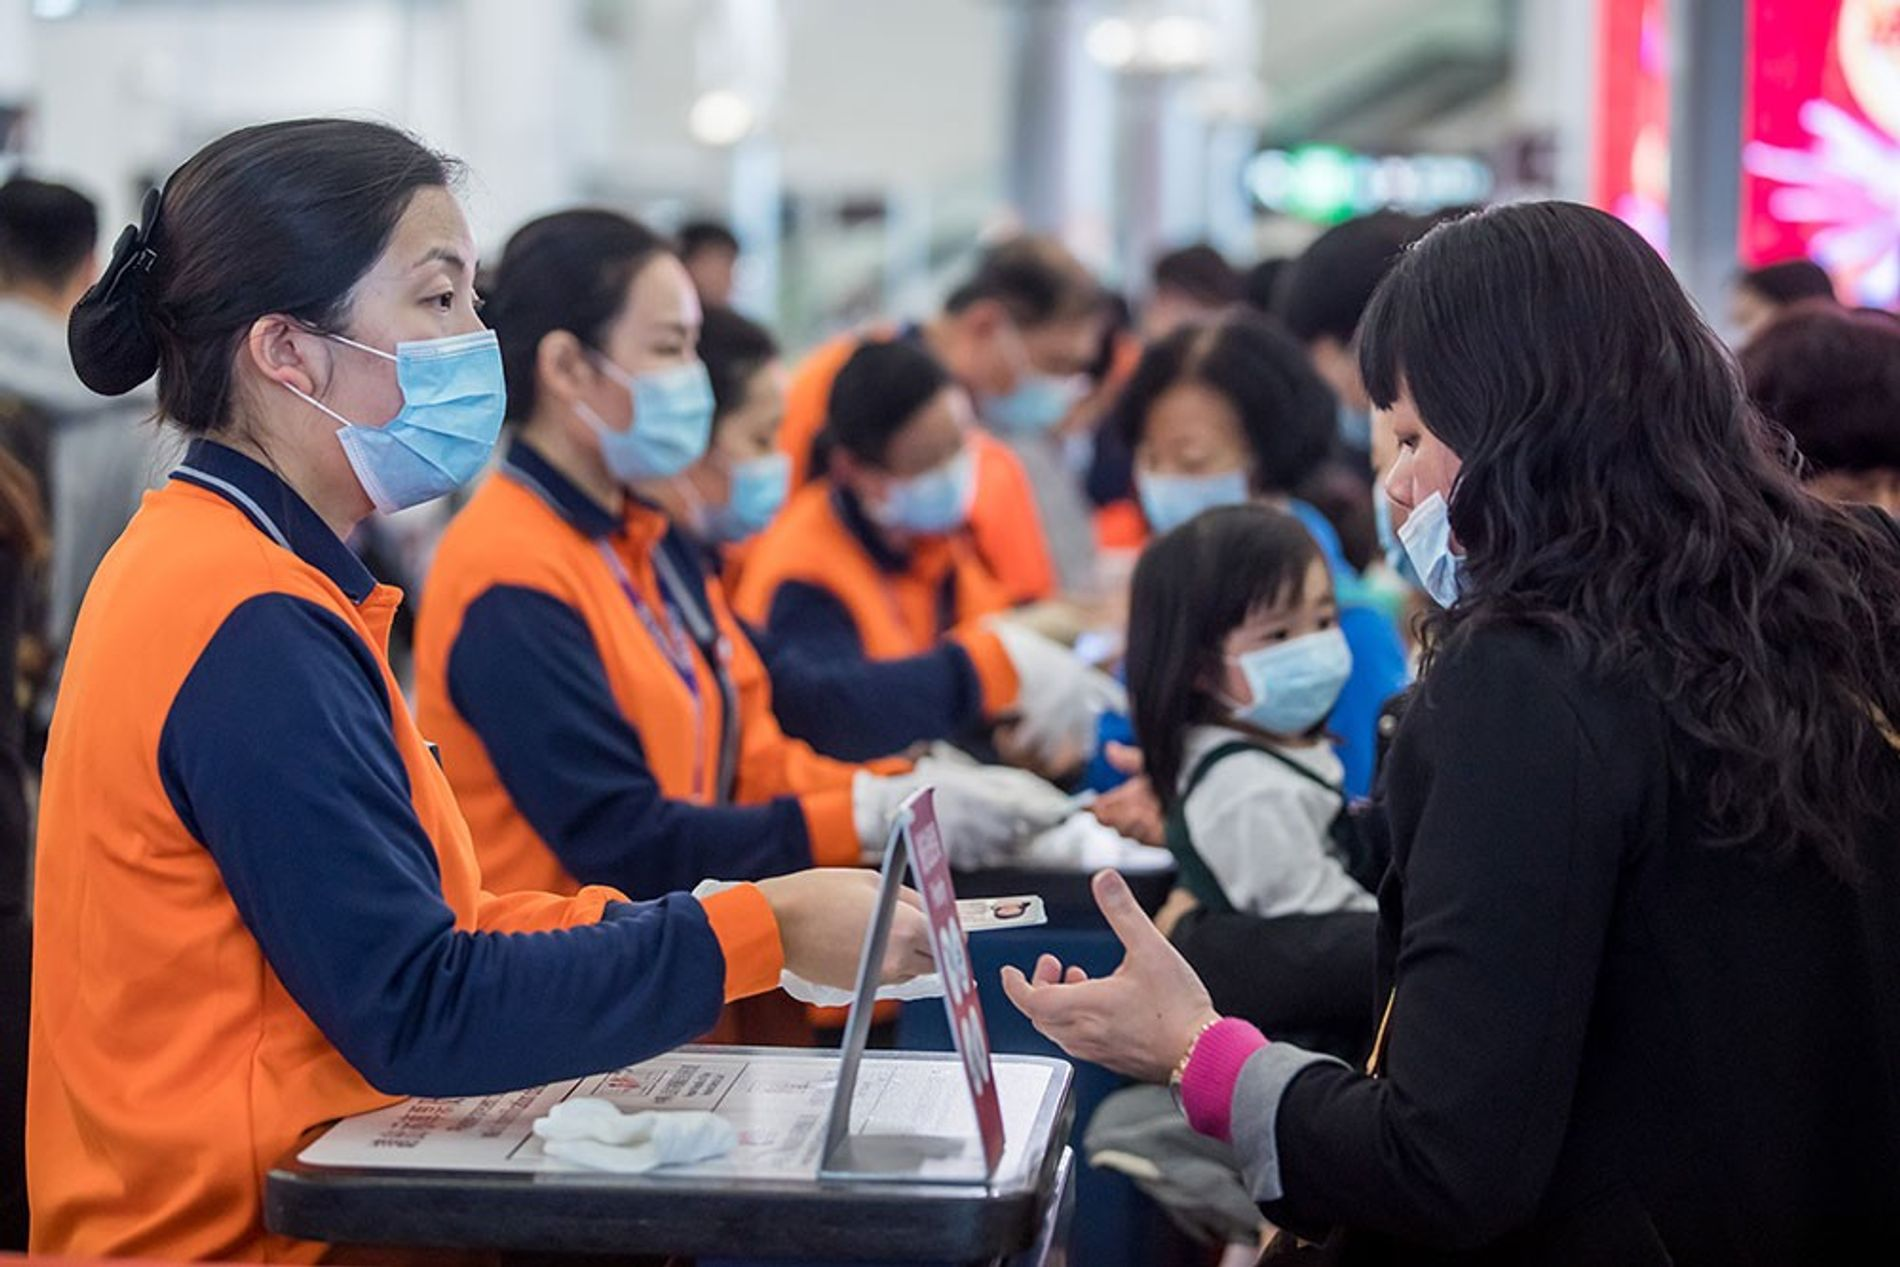 Hong Kong railway workers, in orange vests and face masks, check IDs of travelers at its ...